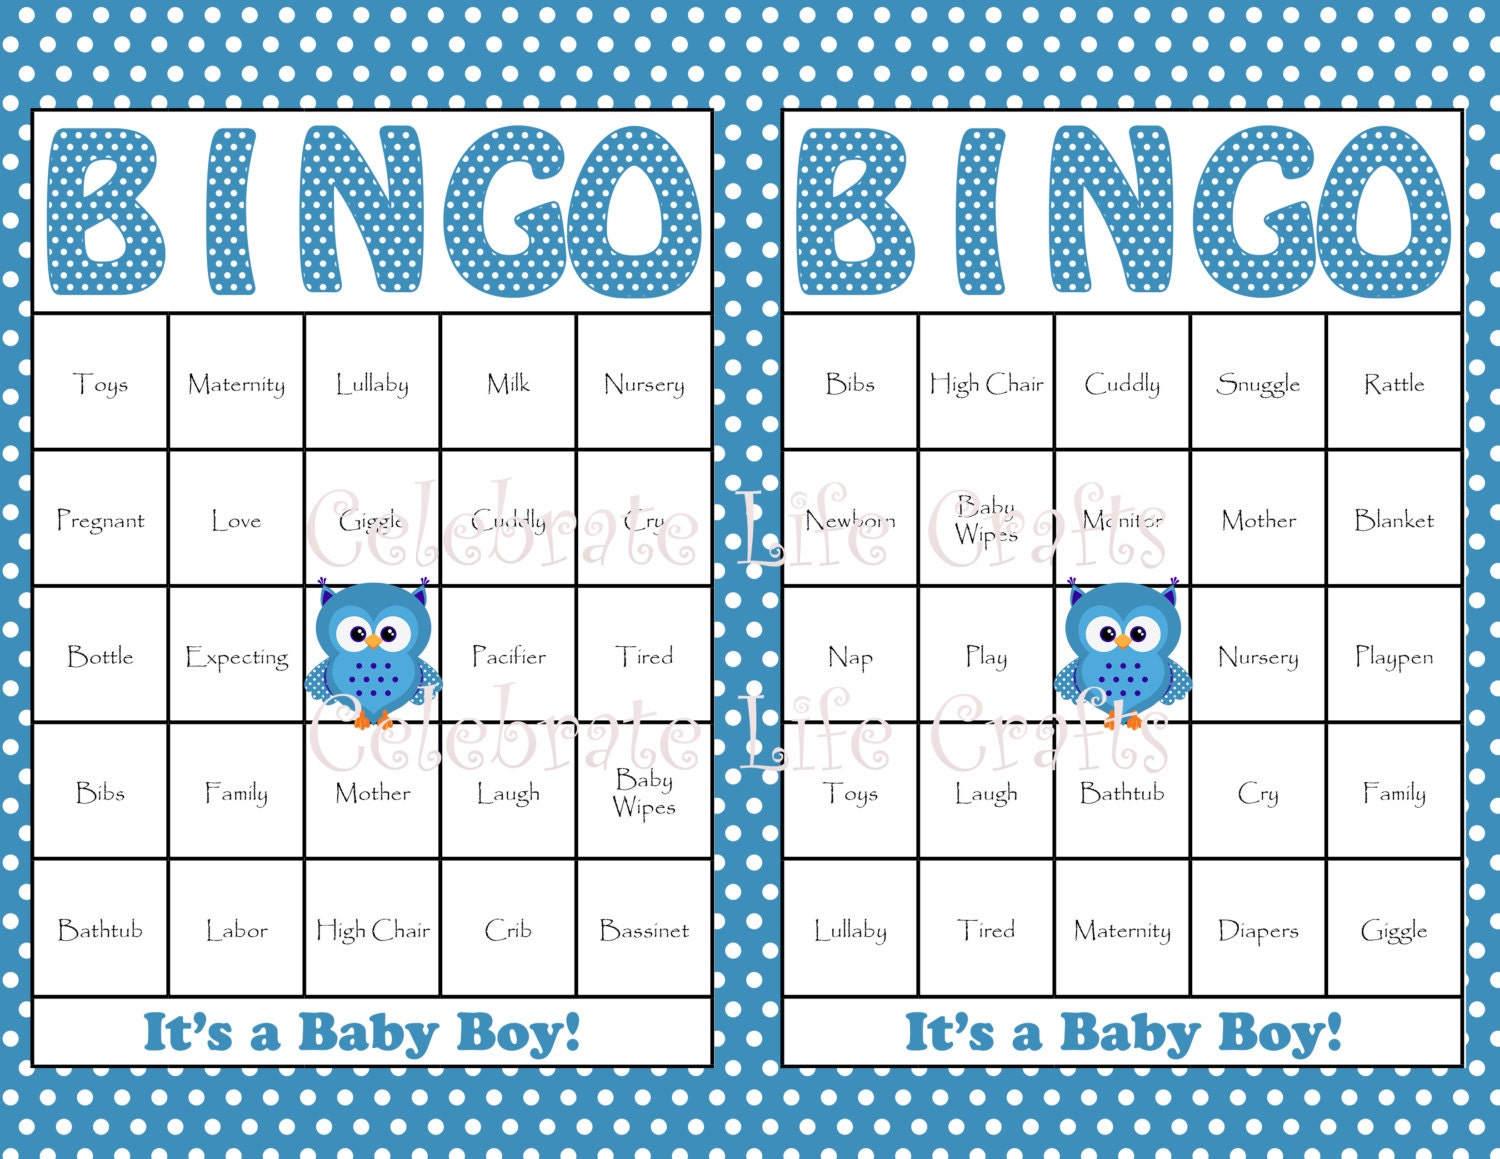 30 Baby Bingo Cards - Blue Owl Baby Shower Bingo Game Printable for ...